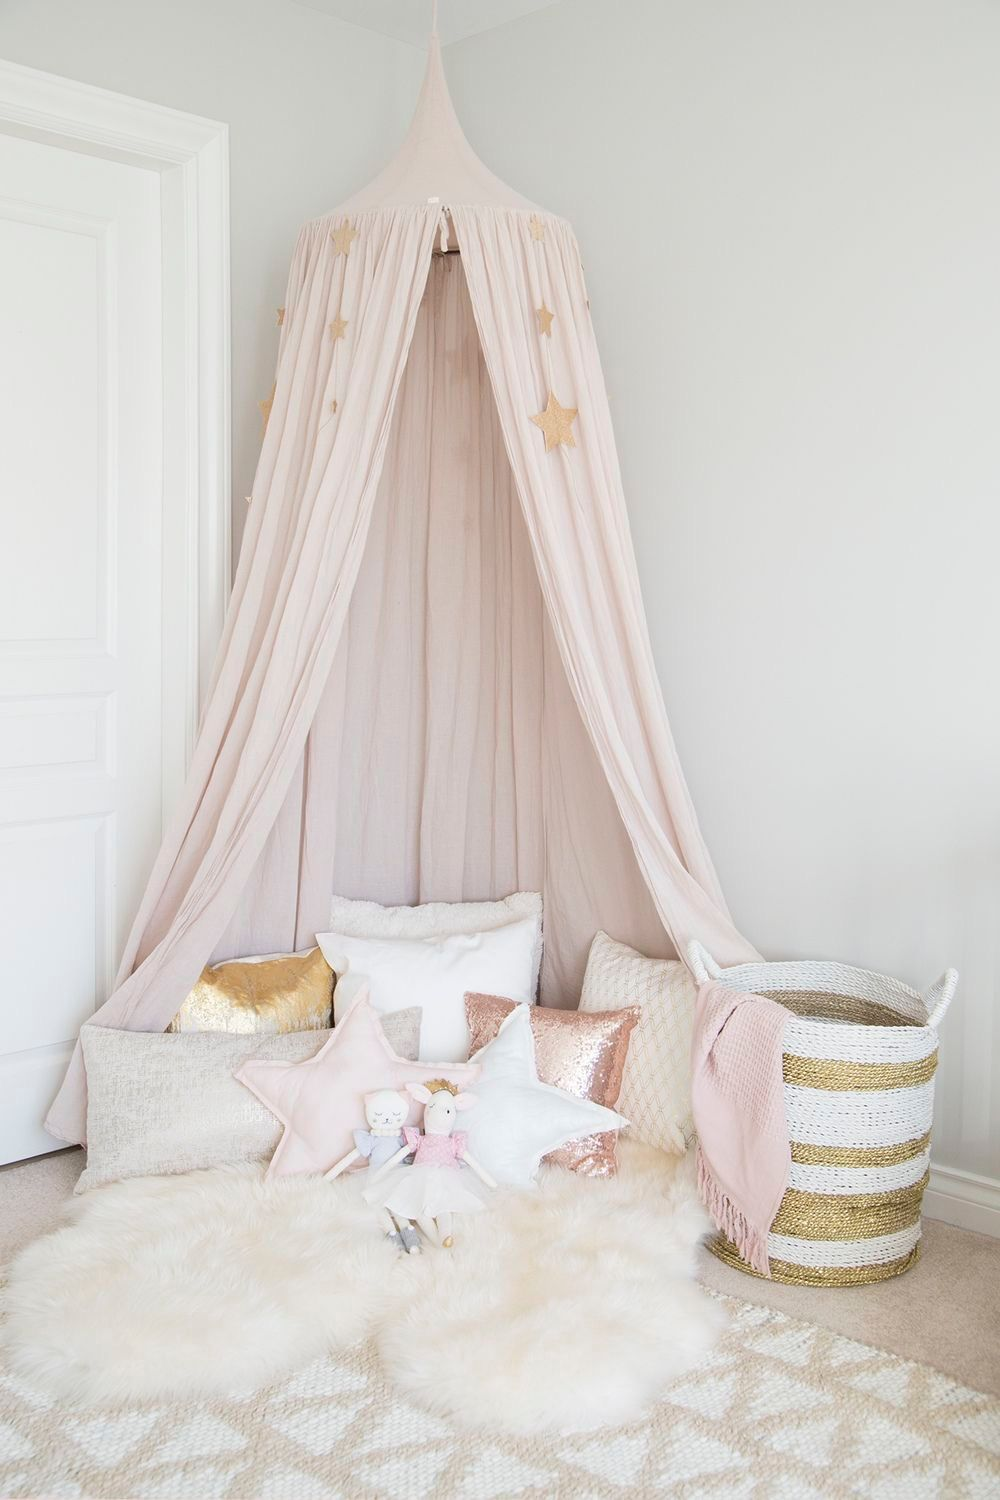 Baby Himmelbett Pin By Kelly Campaz On Babies Rooms Kinderzimmer Kinder Zimmer